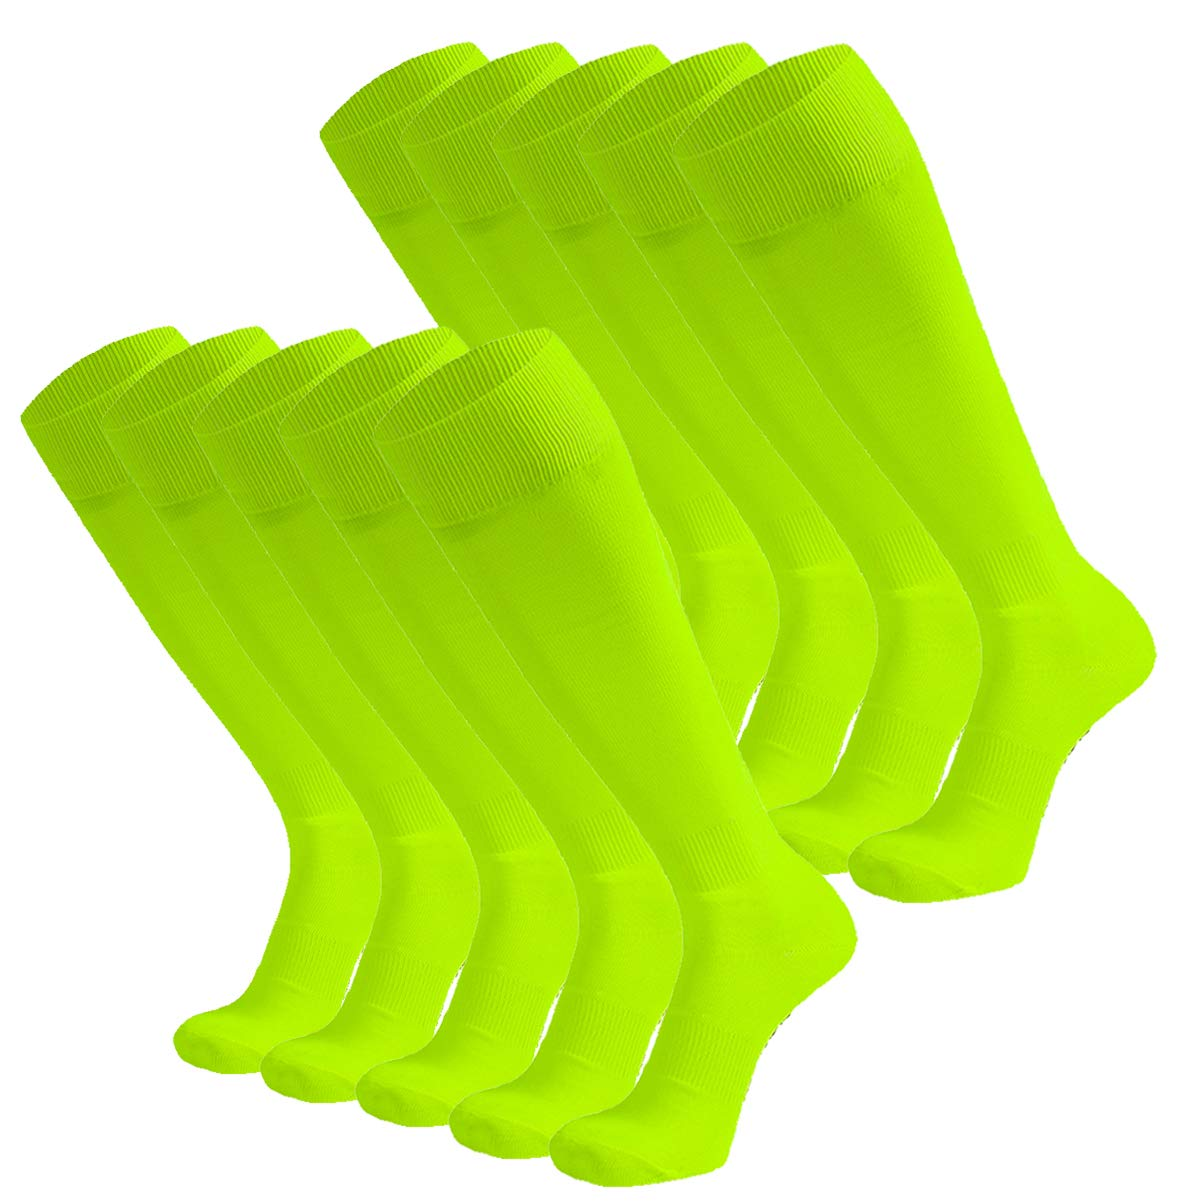 Dsource Unisex Soccer Socks Knee High Solid Baseball Football Sports Team Socks 10 Pairs Fluorescent Yellow by Dsource